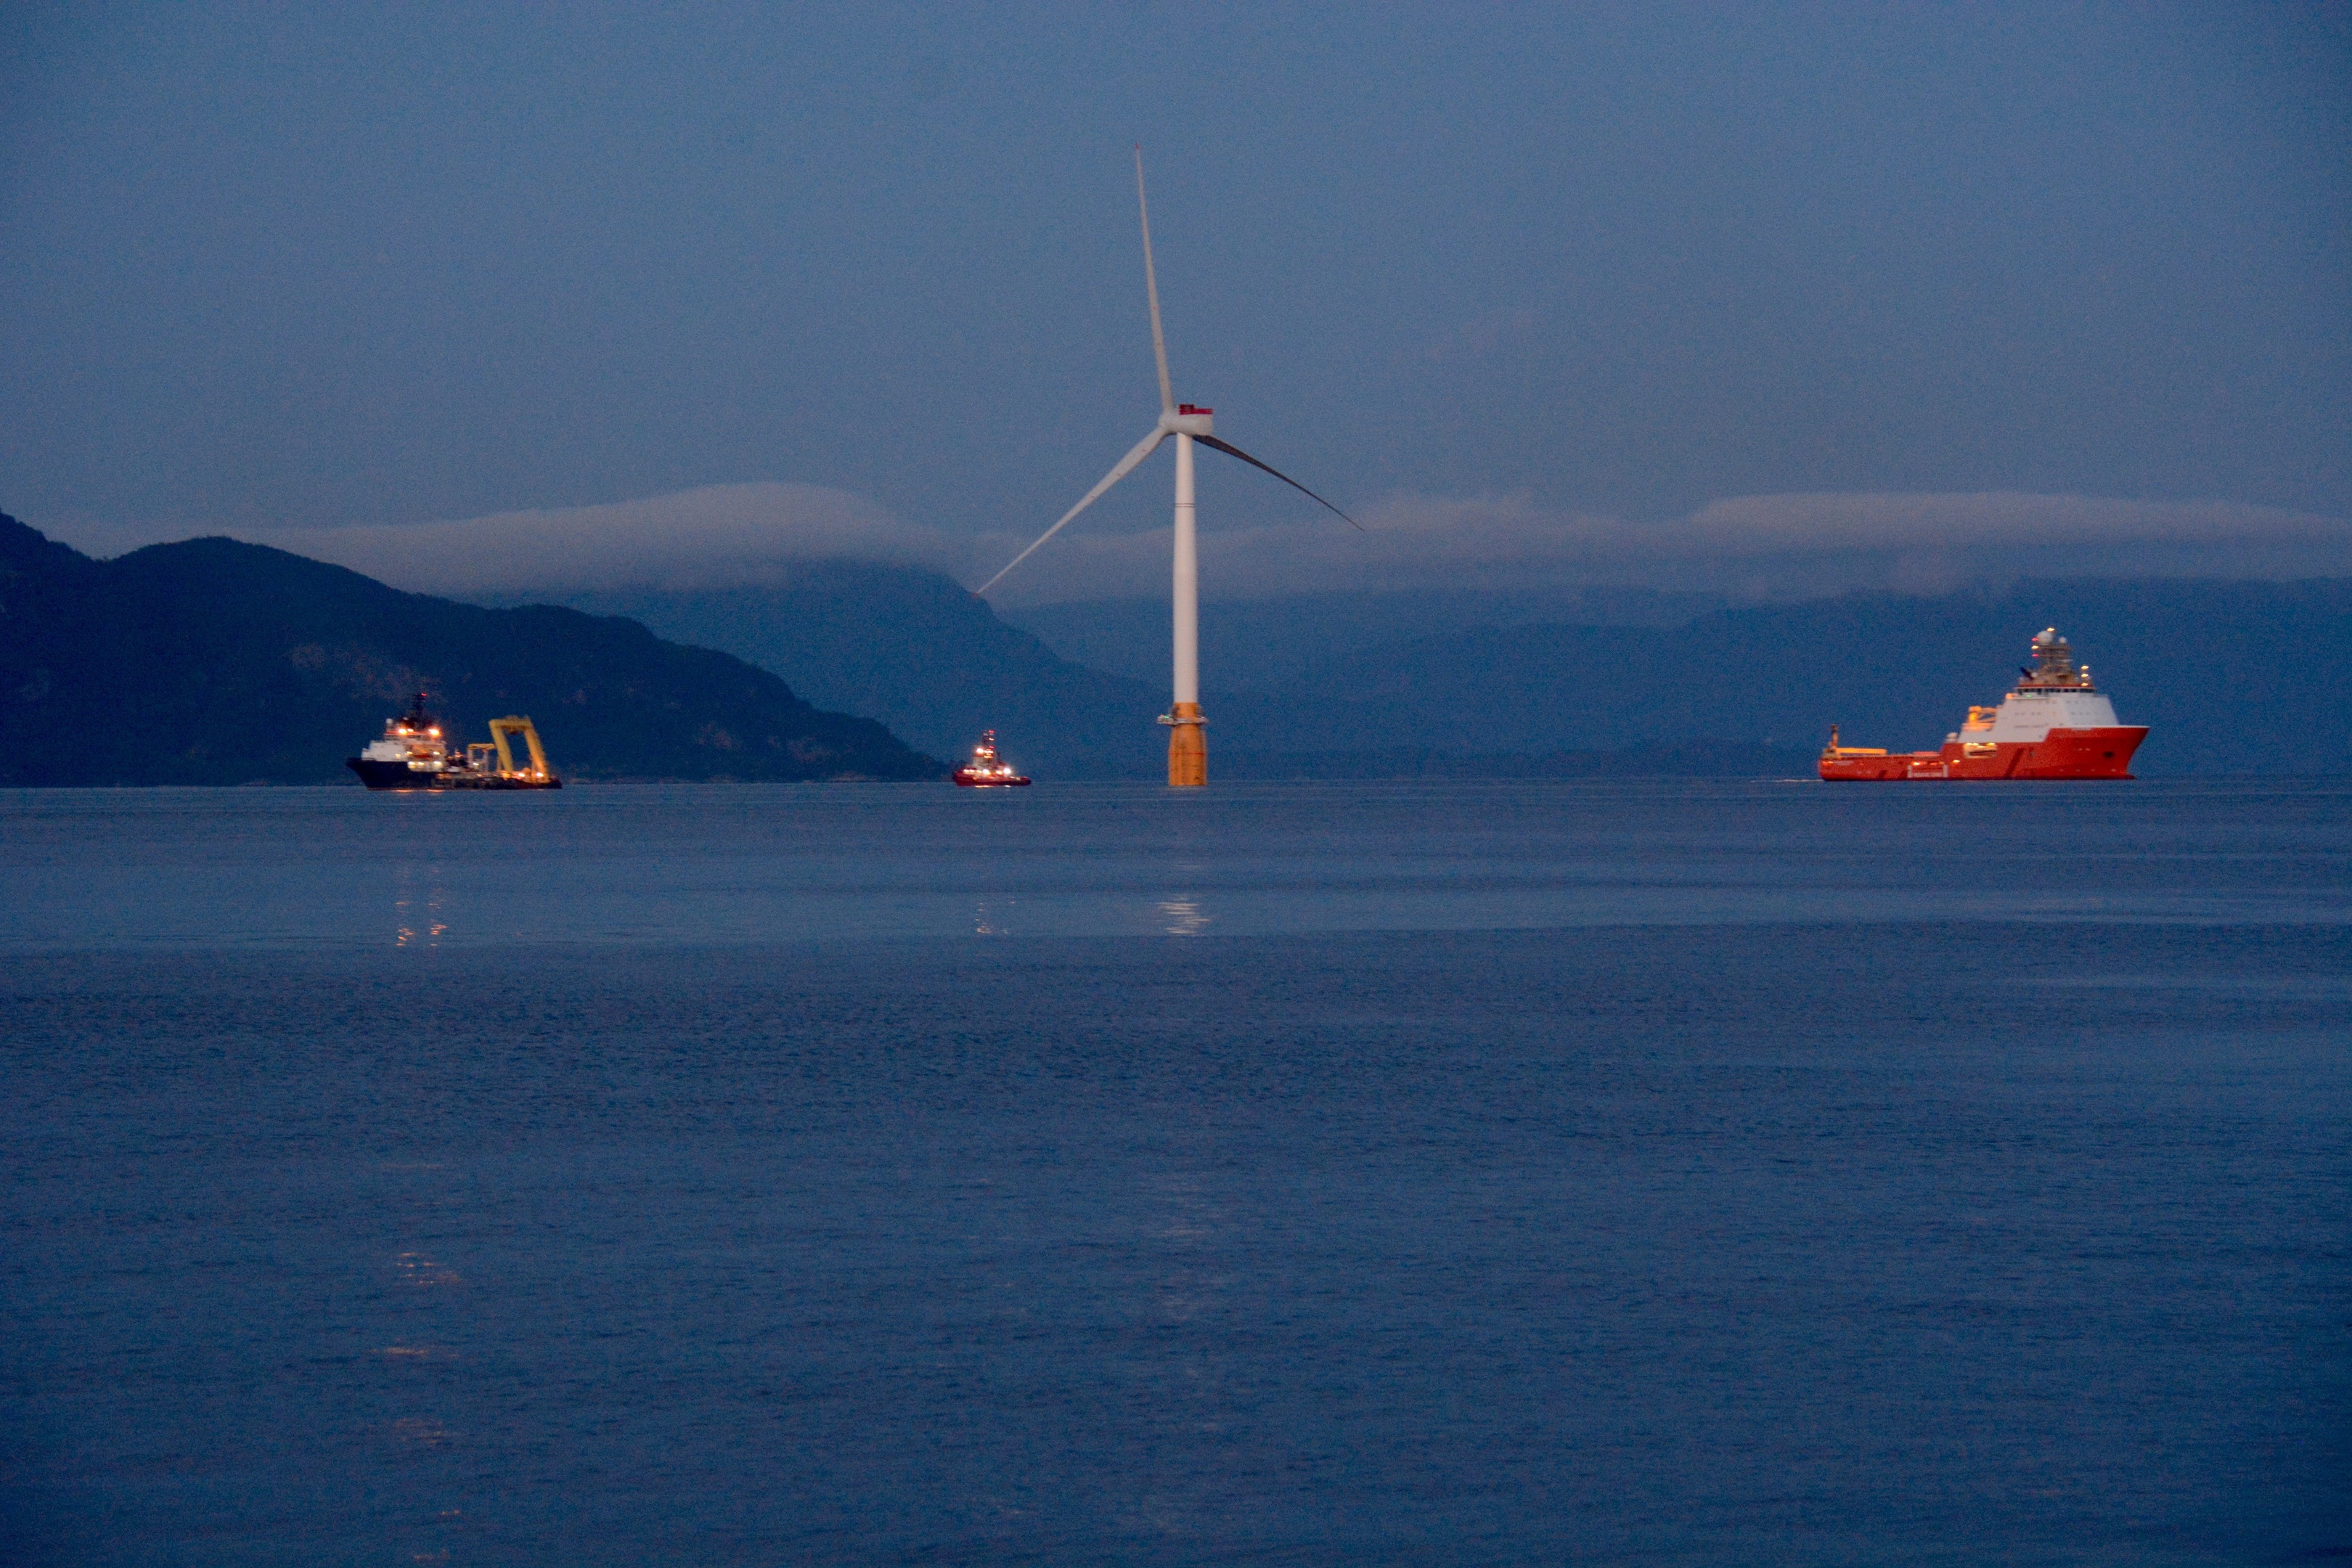 One of the turbines for the Hywind Floating Wind Farm of Scotland. Photo by Eva Sleire, Equinor.